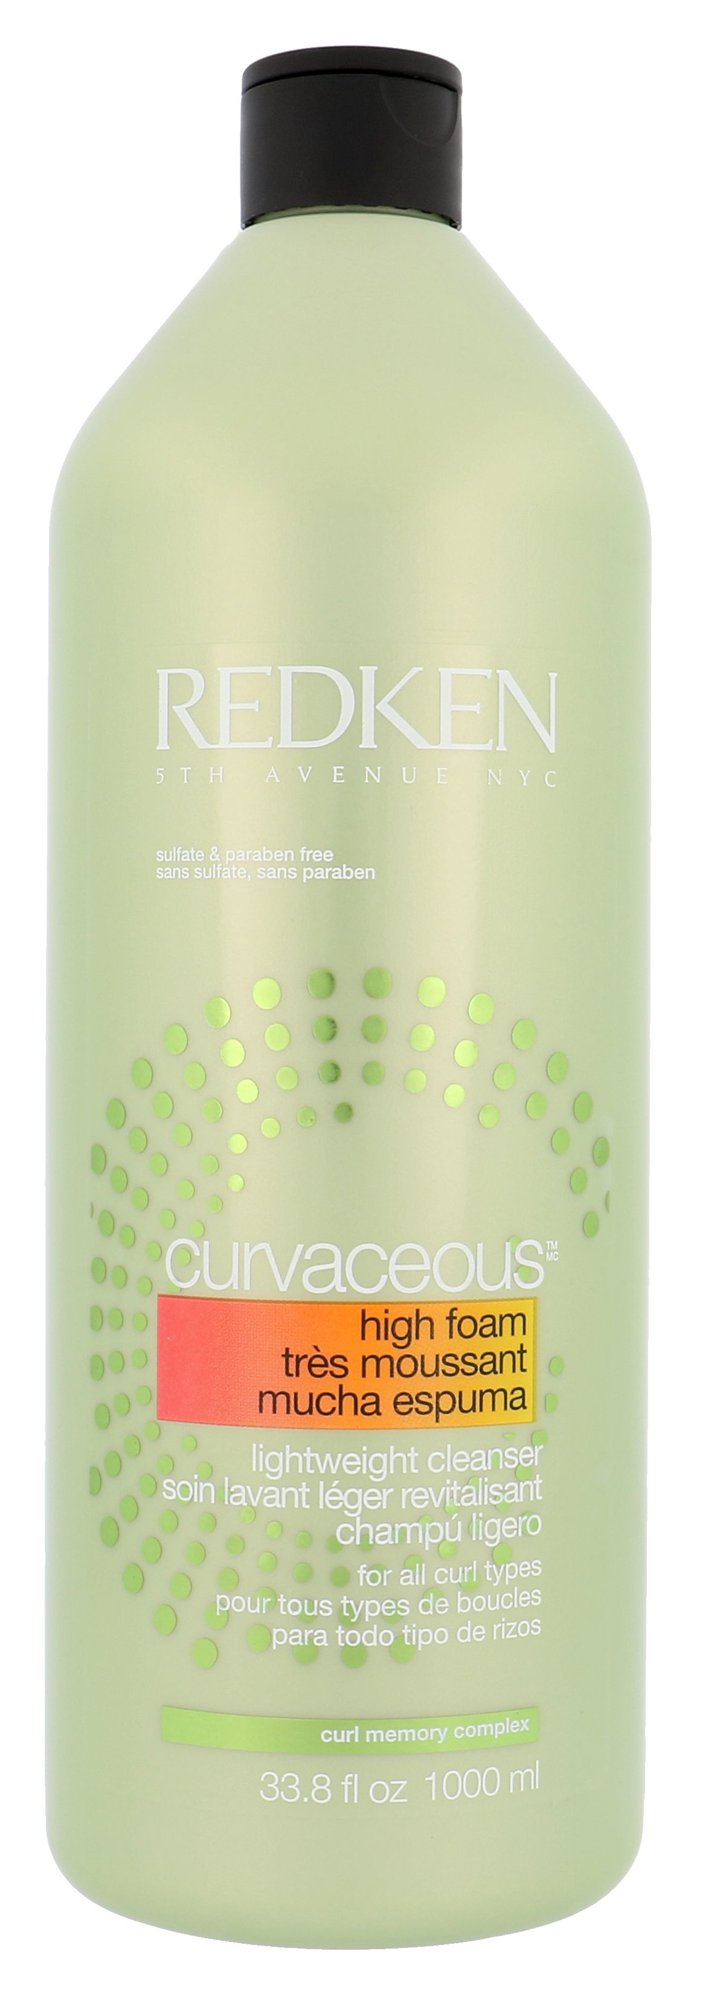 Redken Curvaceous Cosmetic 1000ml